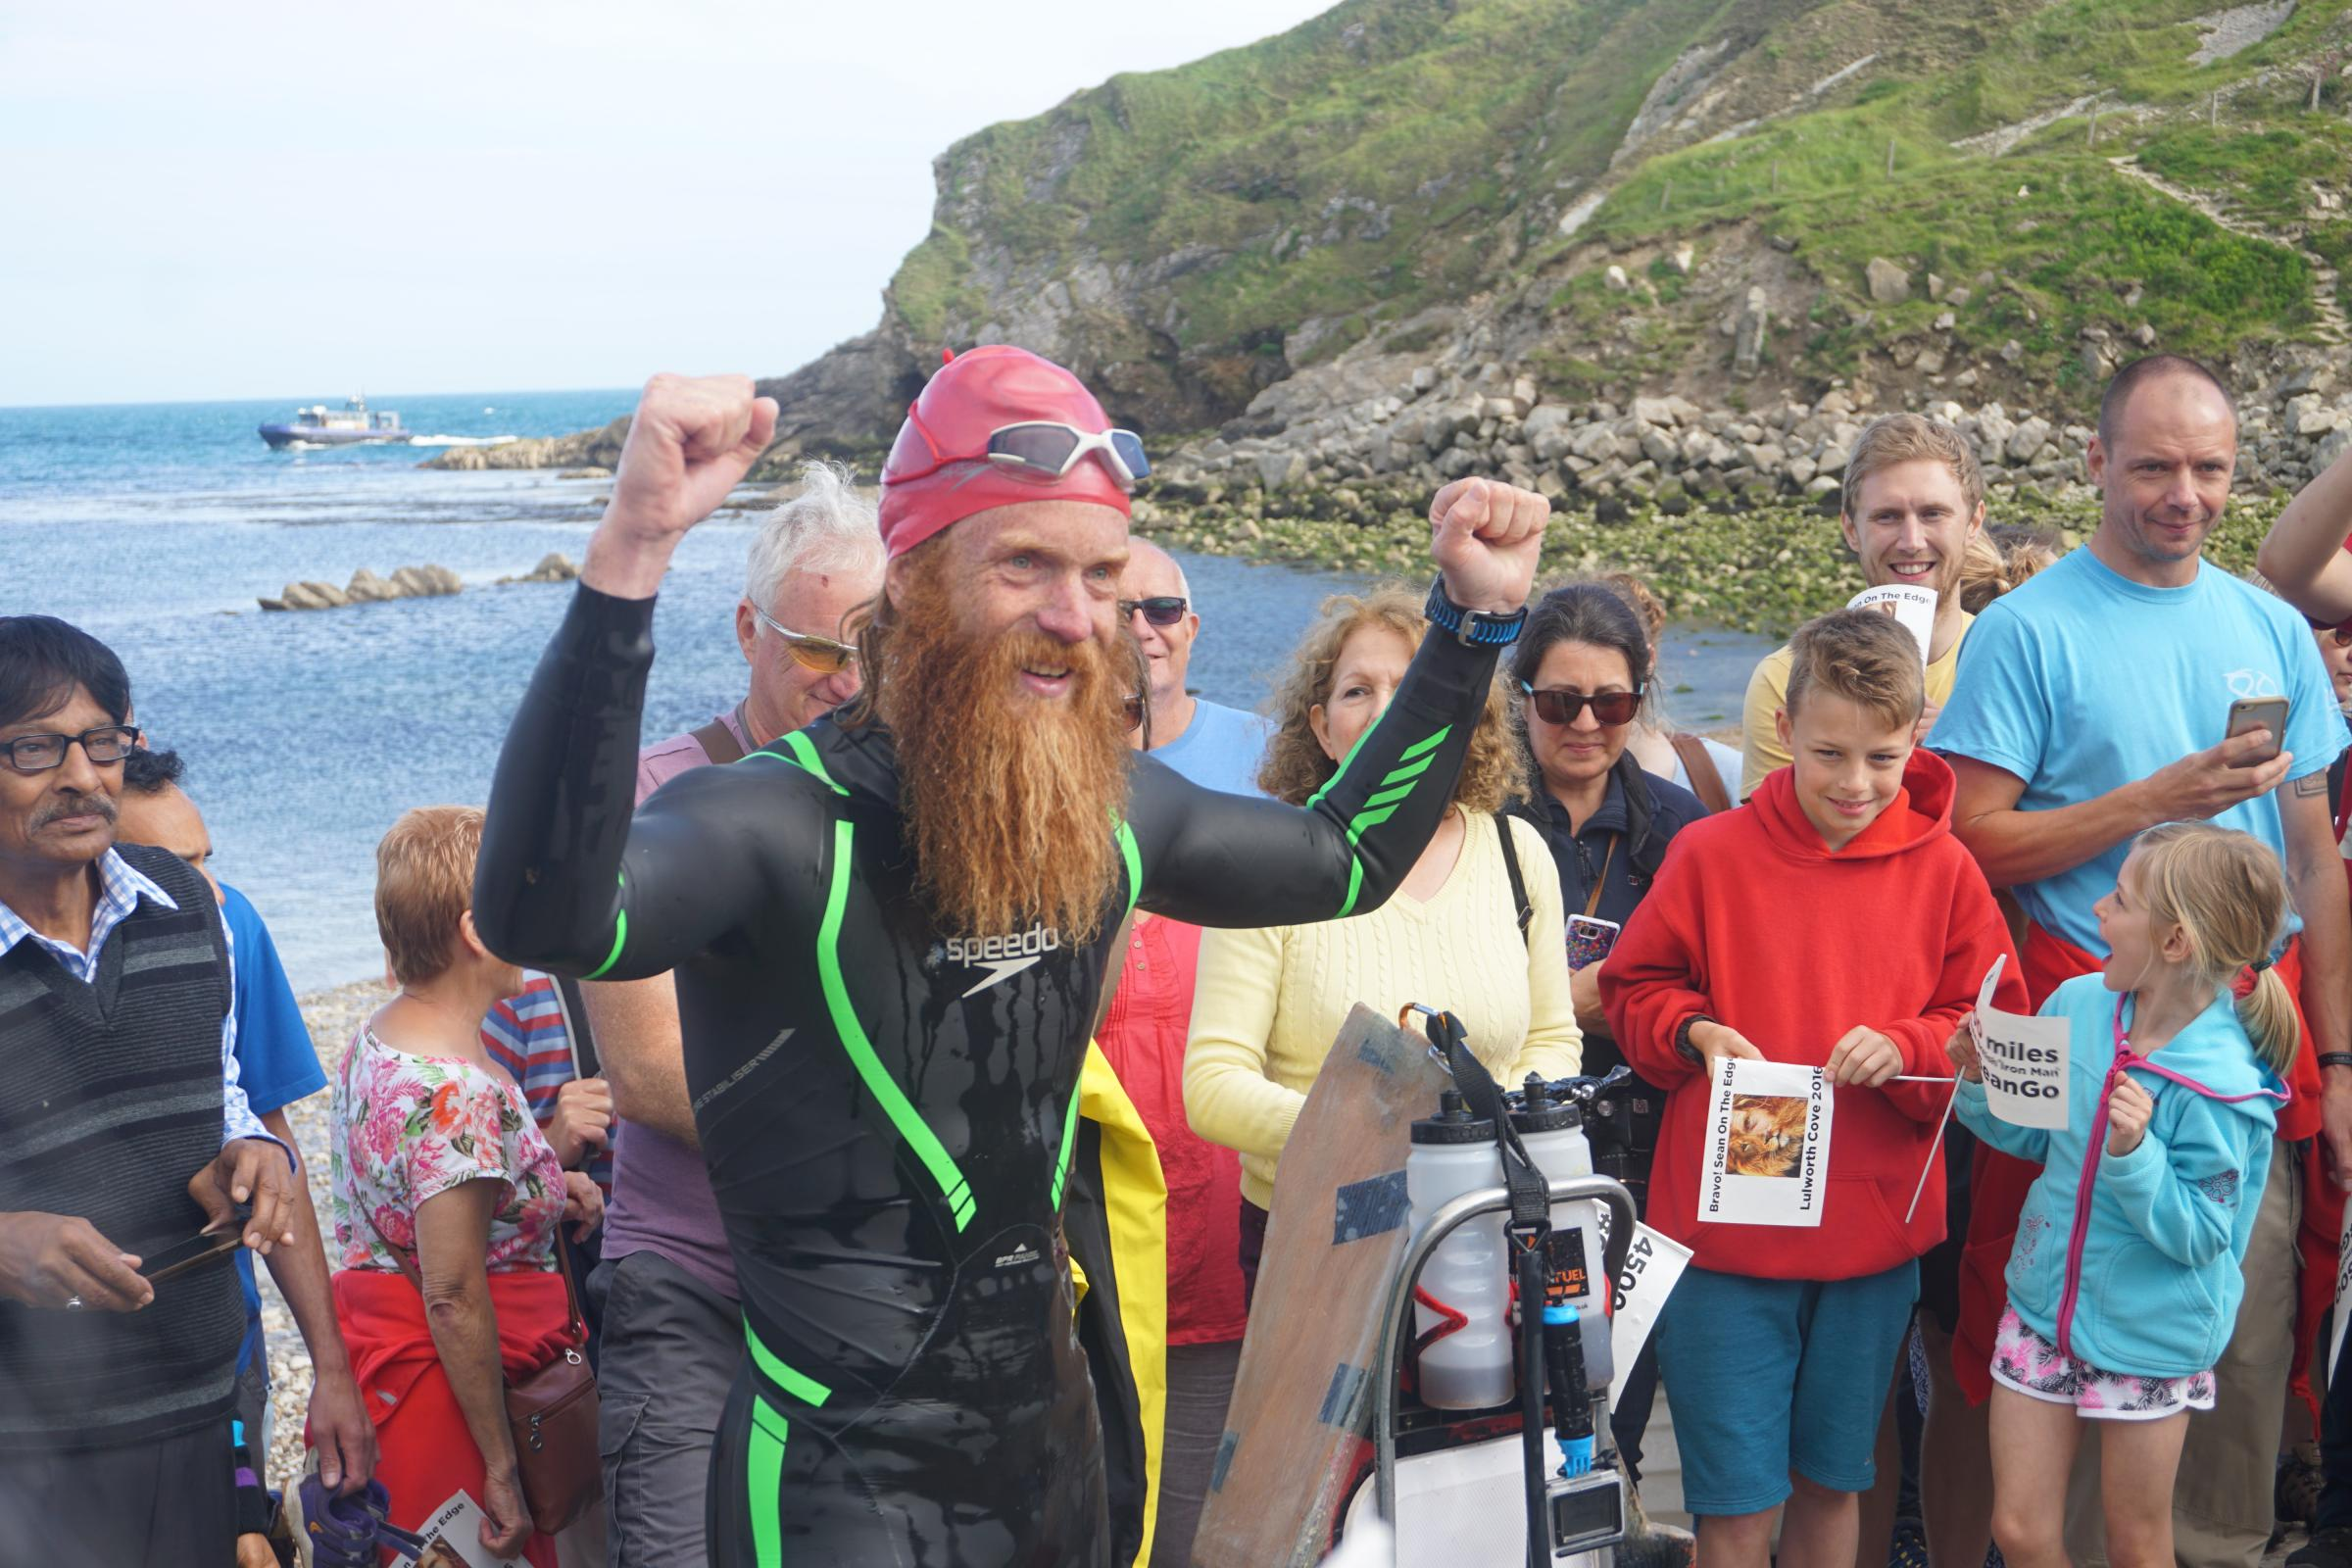 PICS AND VIDEO Sean Conway returns to Lulworth Cove after world s